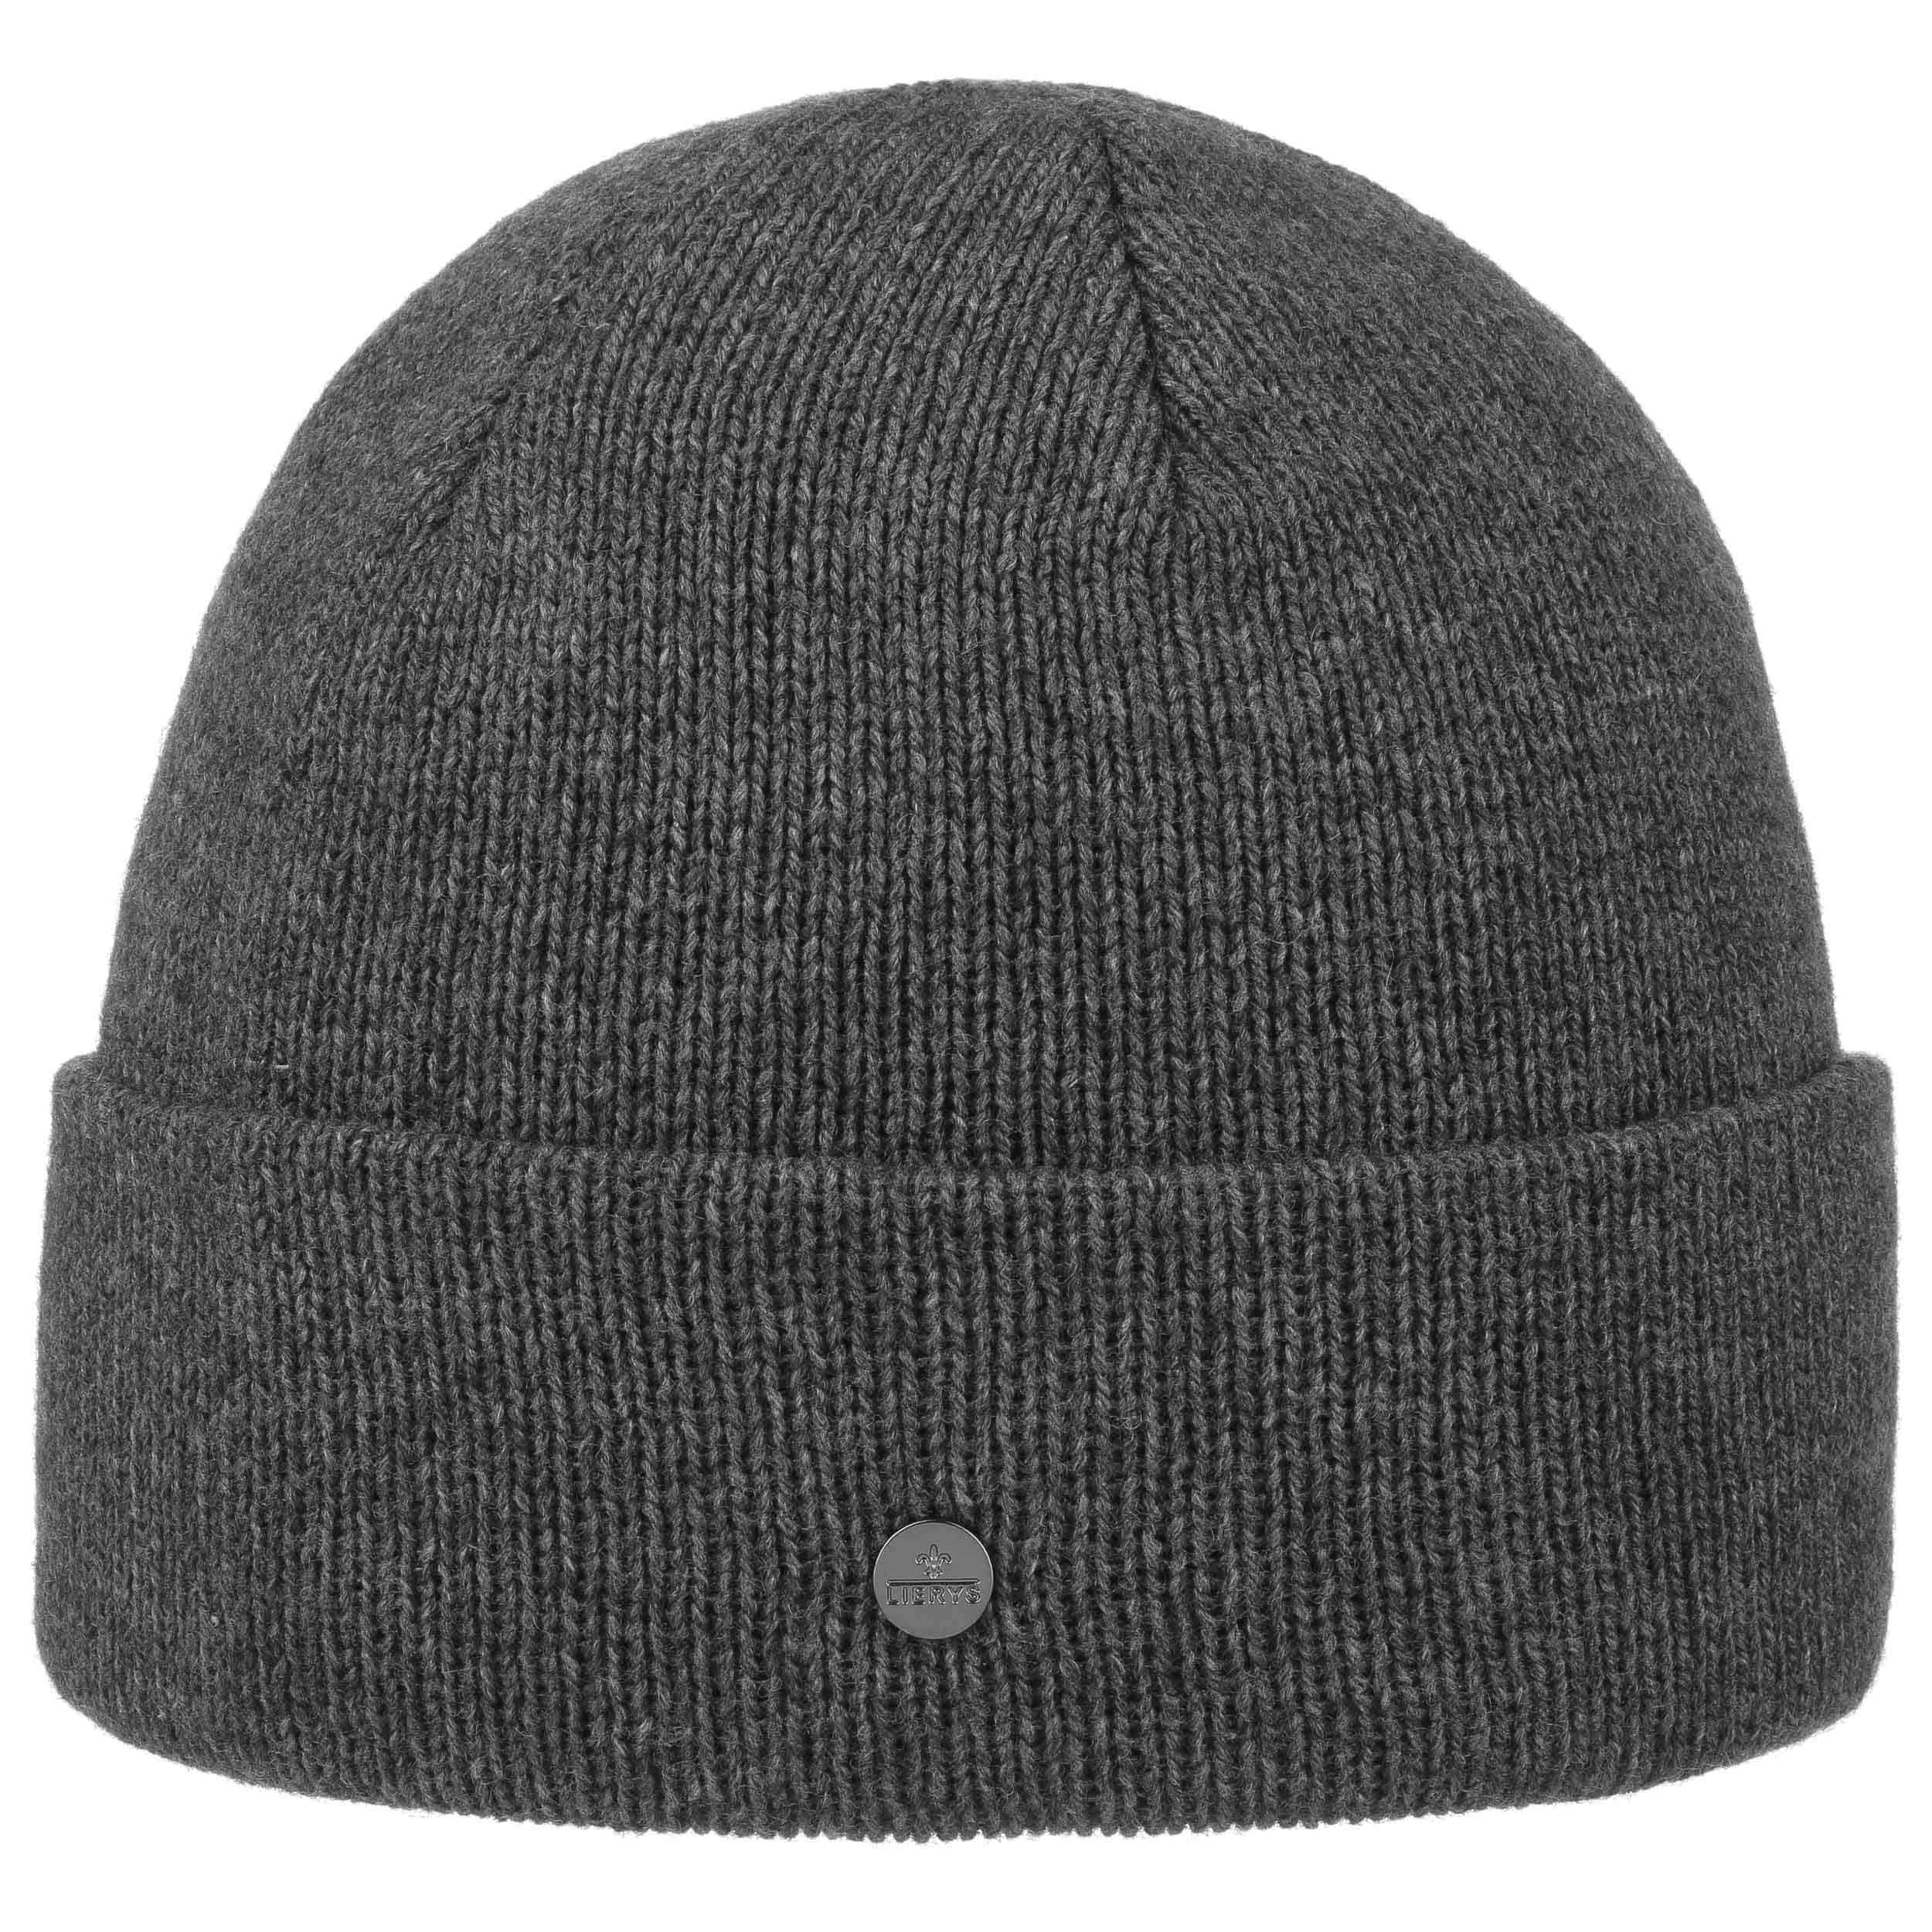 Free shipping and returns on Women's Cashmere & Cashmere Blend Hats at erlinelomantkgs831.ga